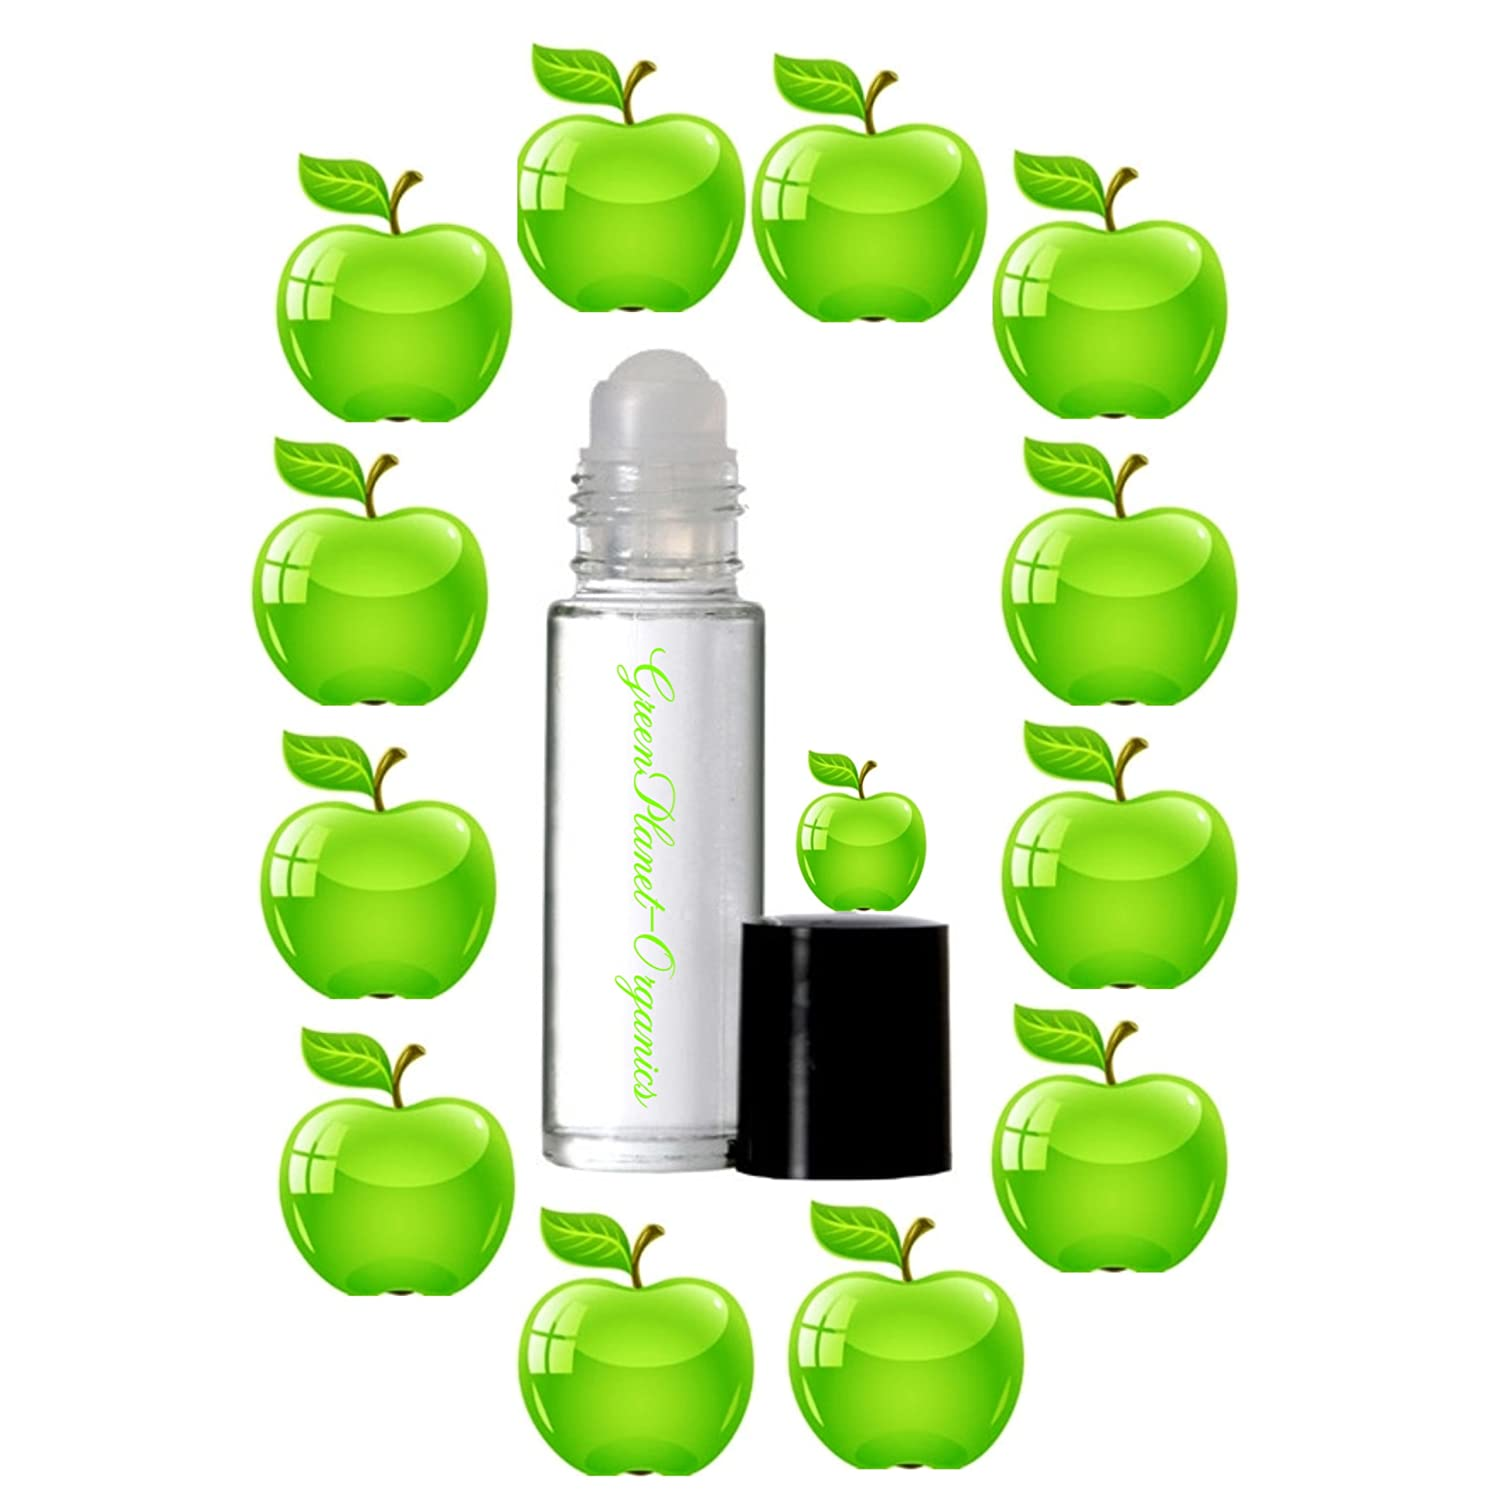 Set of 2: Green Apples Perfume Oil (Sparkling, Tangy & Uplifting Scent) .33oz x2